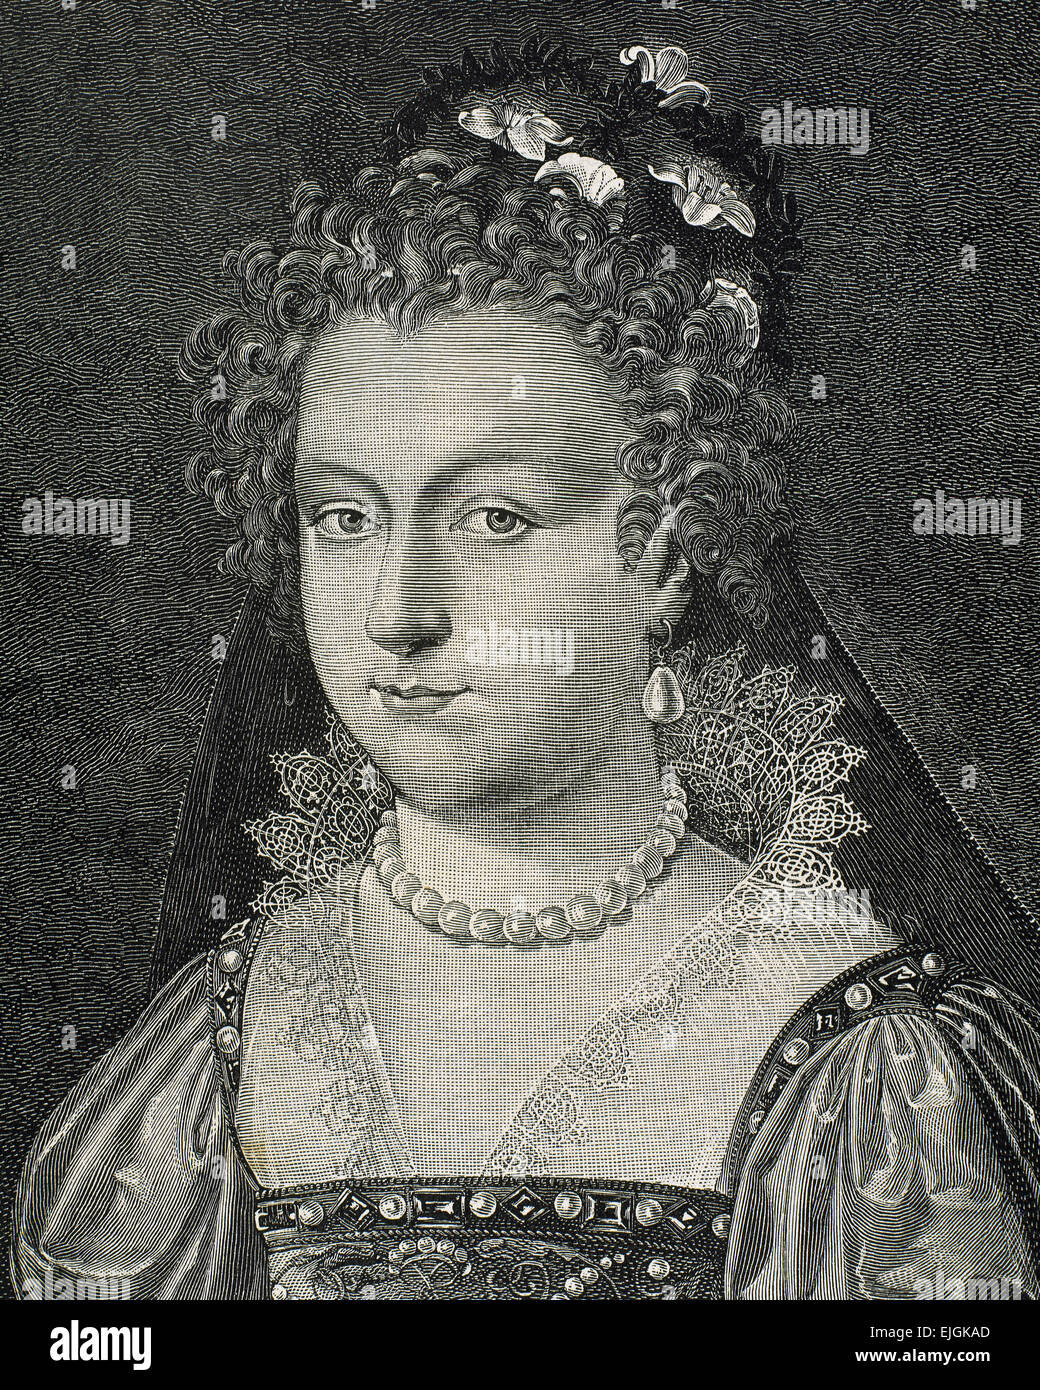 Elizabeth I (1533-1603). Queen of England and Ireland. Called The Virgin Queen. House of Tudor. Engraving. Portrait. - Stock Image